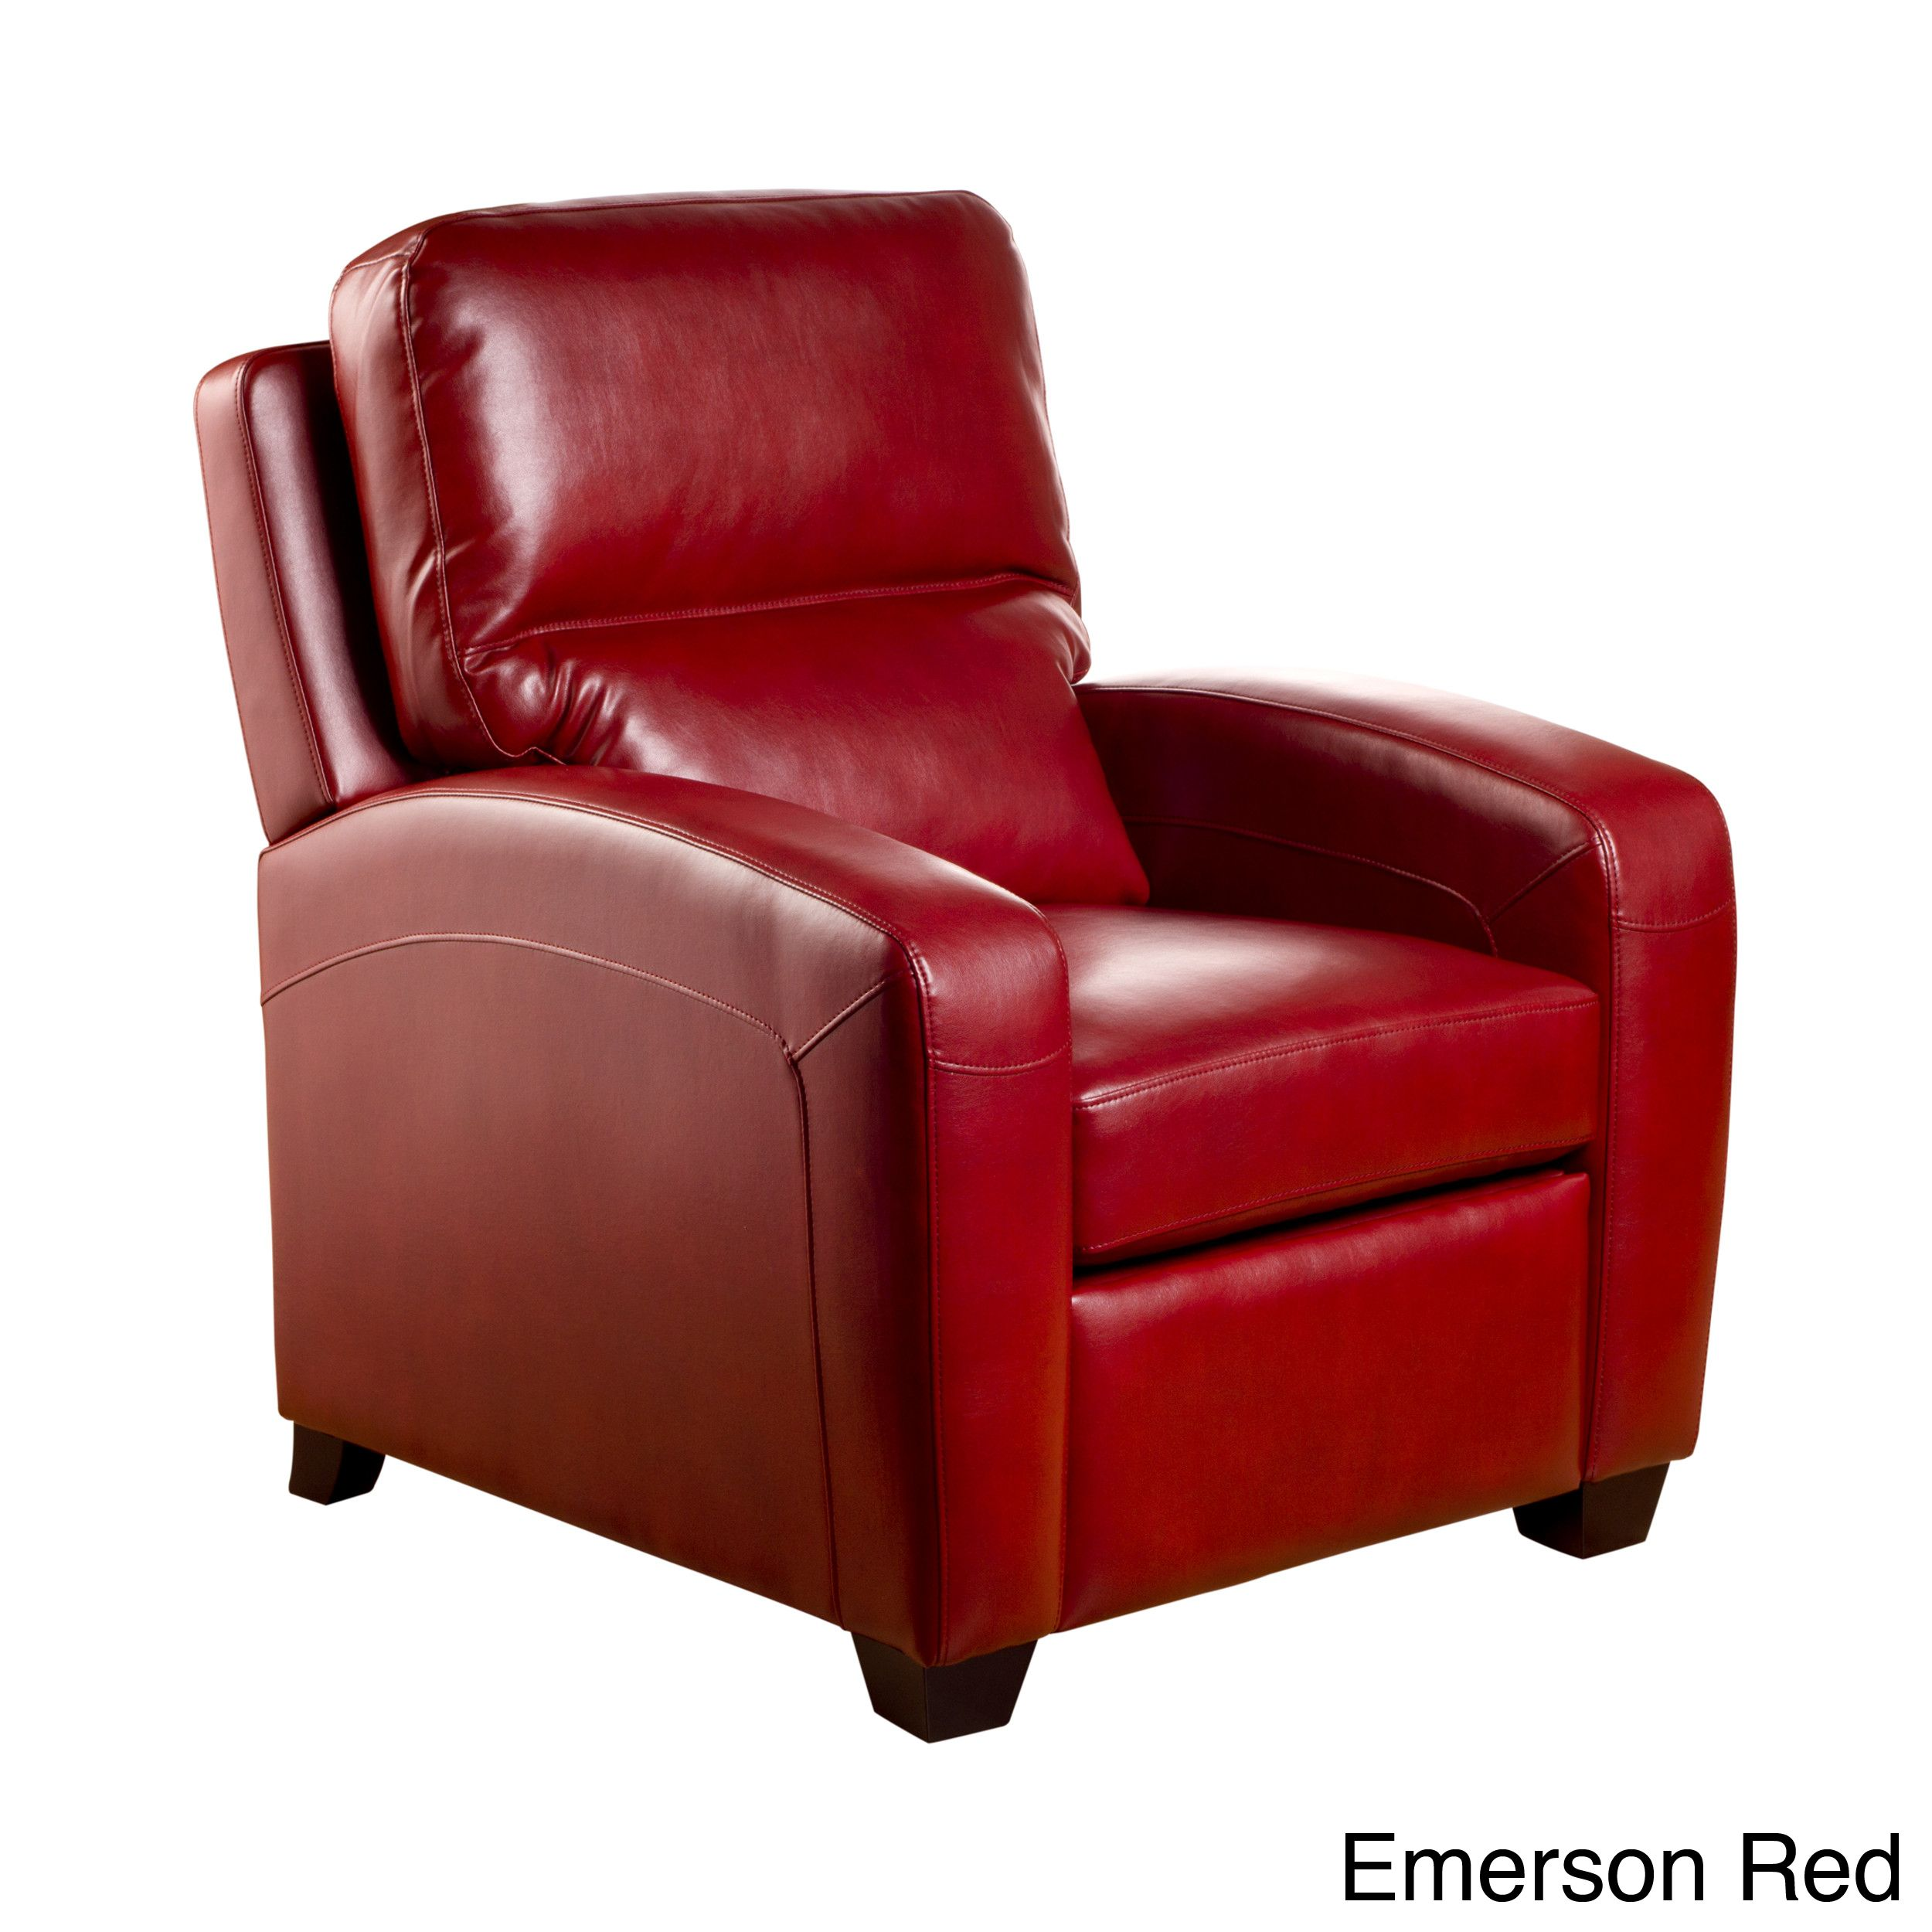 Opulence Home Furniture   Brice Contemporary Recliner Chair   Emerson Red  Leather